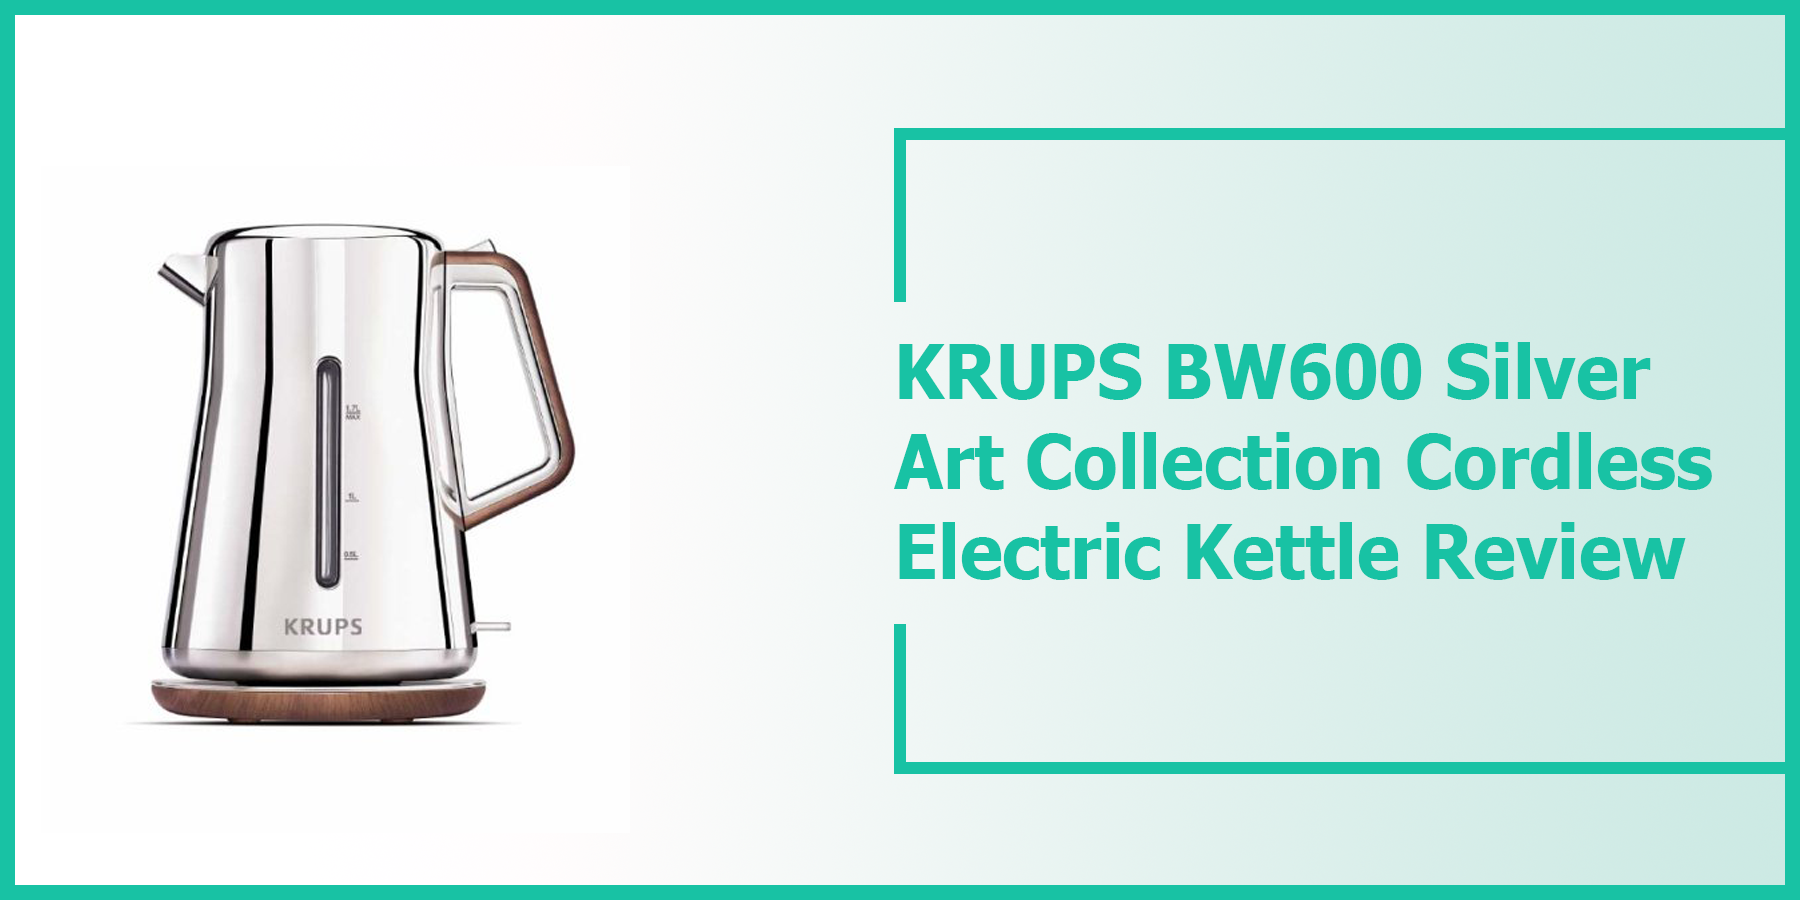 KRUPS BW600 Silver Art Collection Cordless Electric Kettle Review